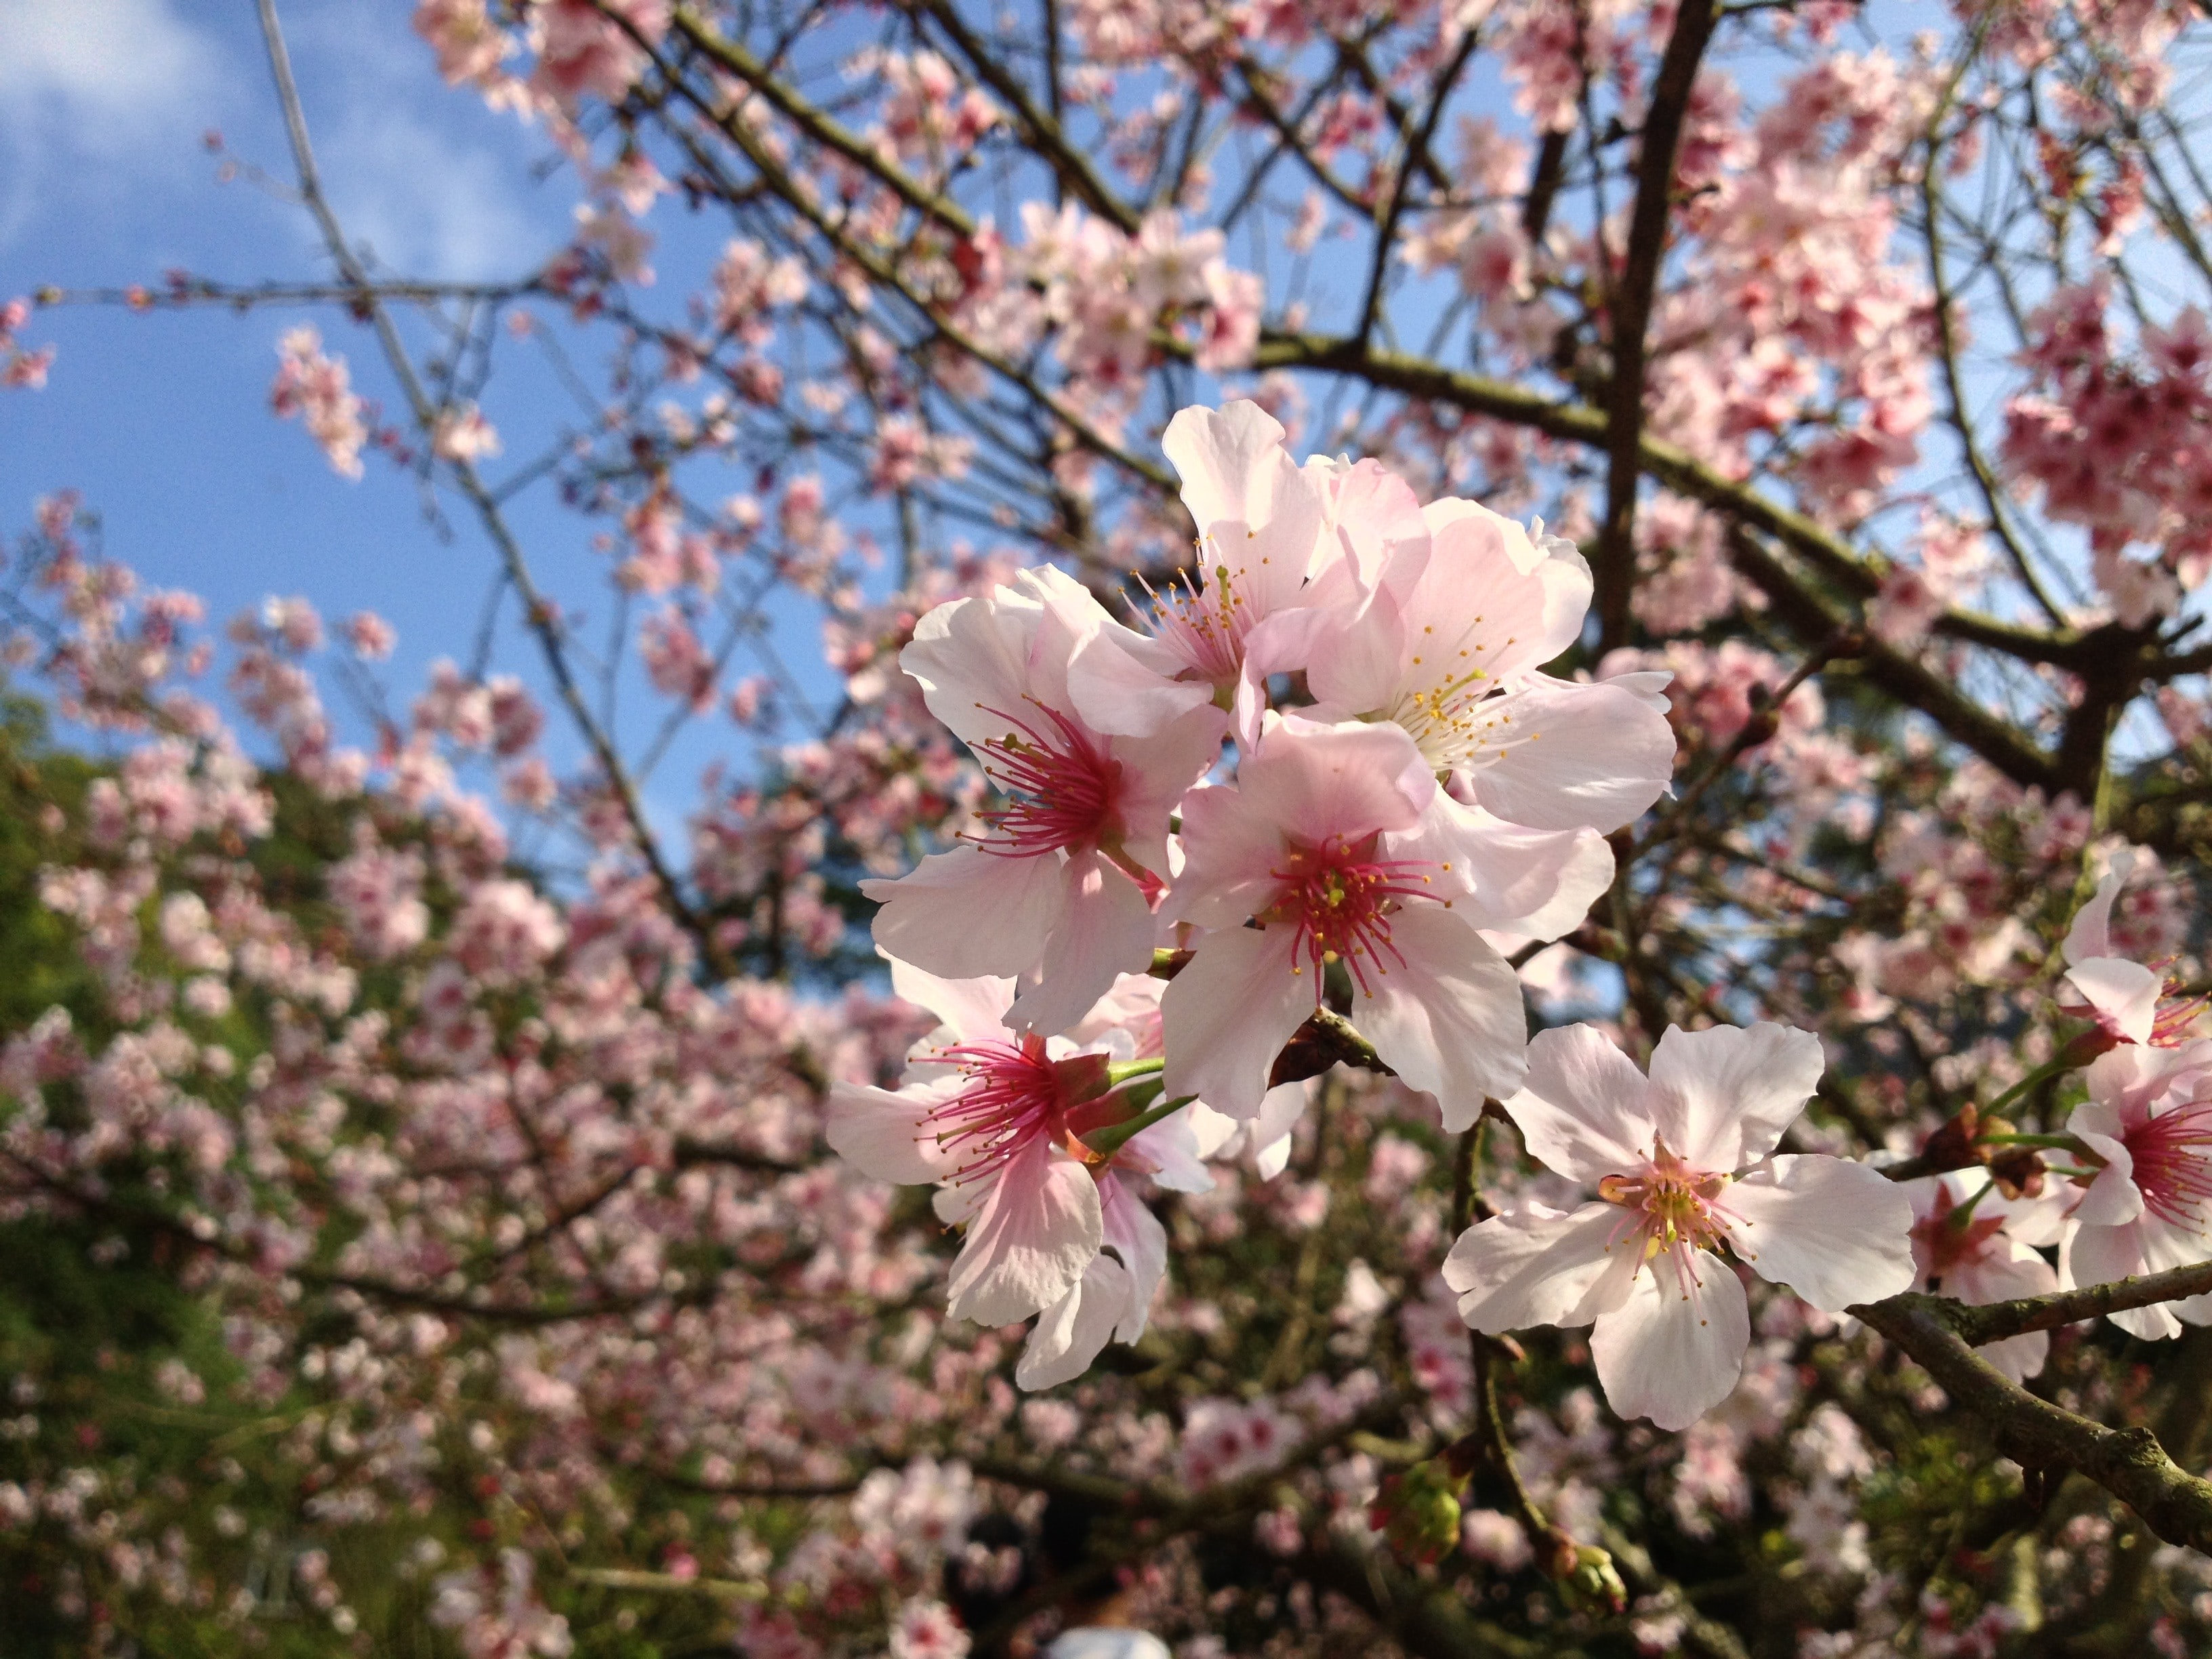 Cherry blossom flower in focus with blooming tree in background and blue sky